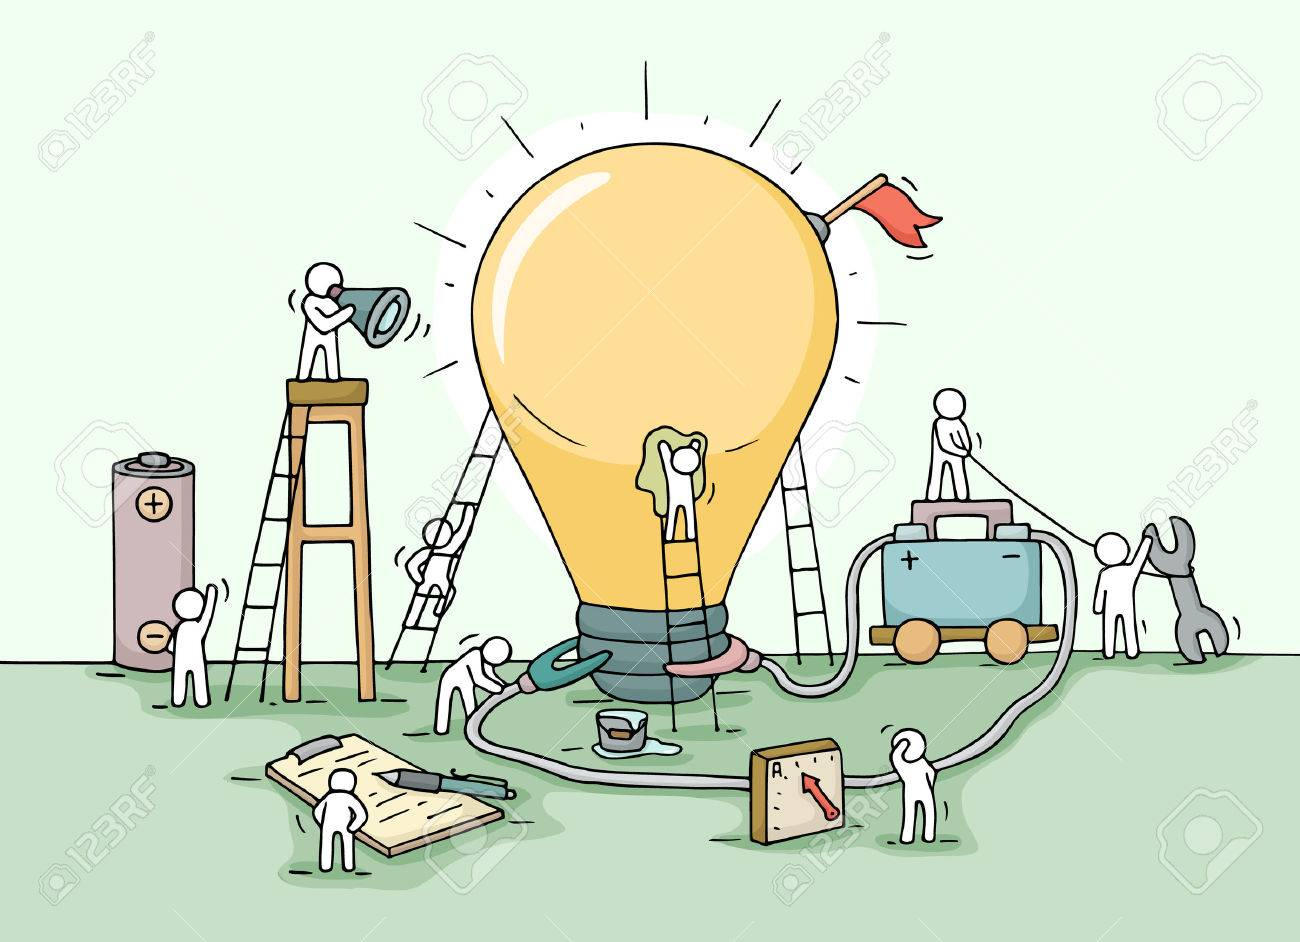 Sketch of lamp idea construction with working little people, battery, flag. Doodle cute miniature of building lighting lamp and preparing for the new creative. Hand drawn cartoon vector illustration for business design and infographic. - 63717942